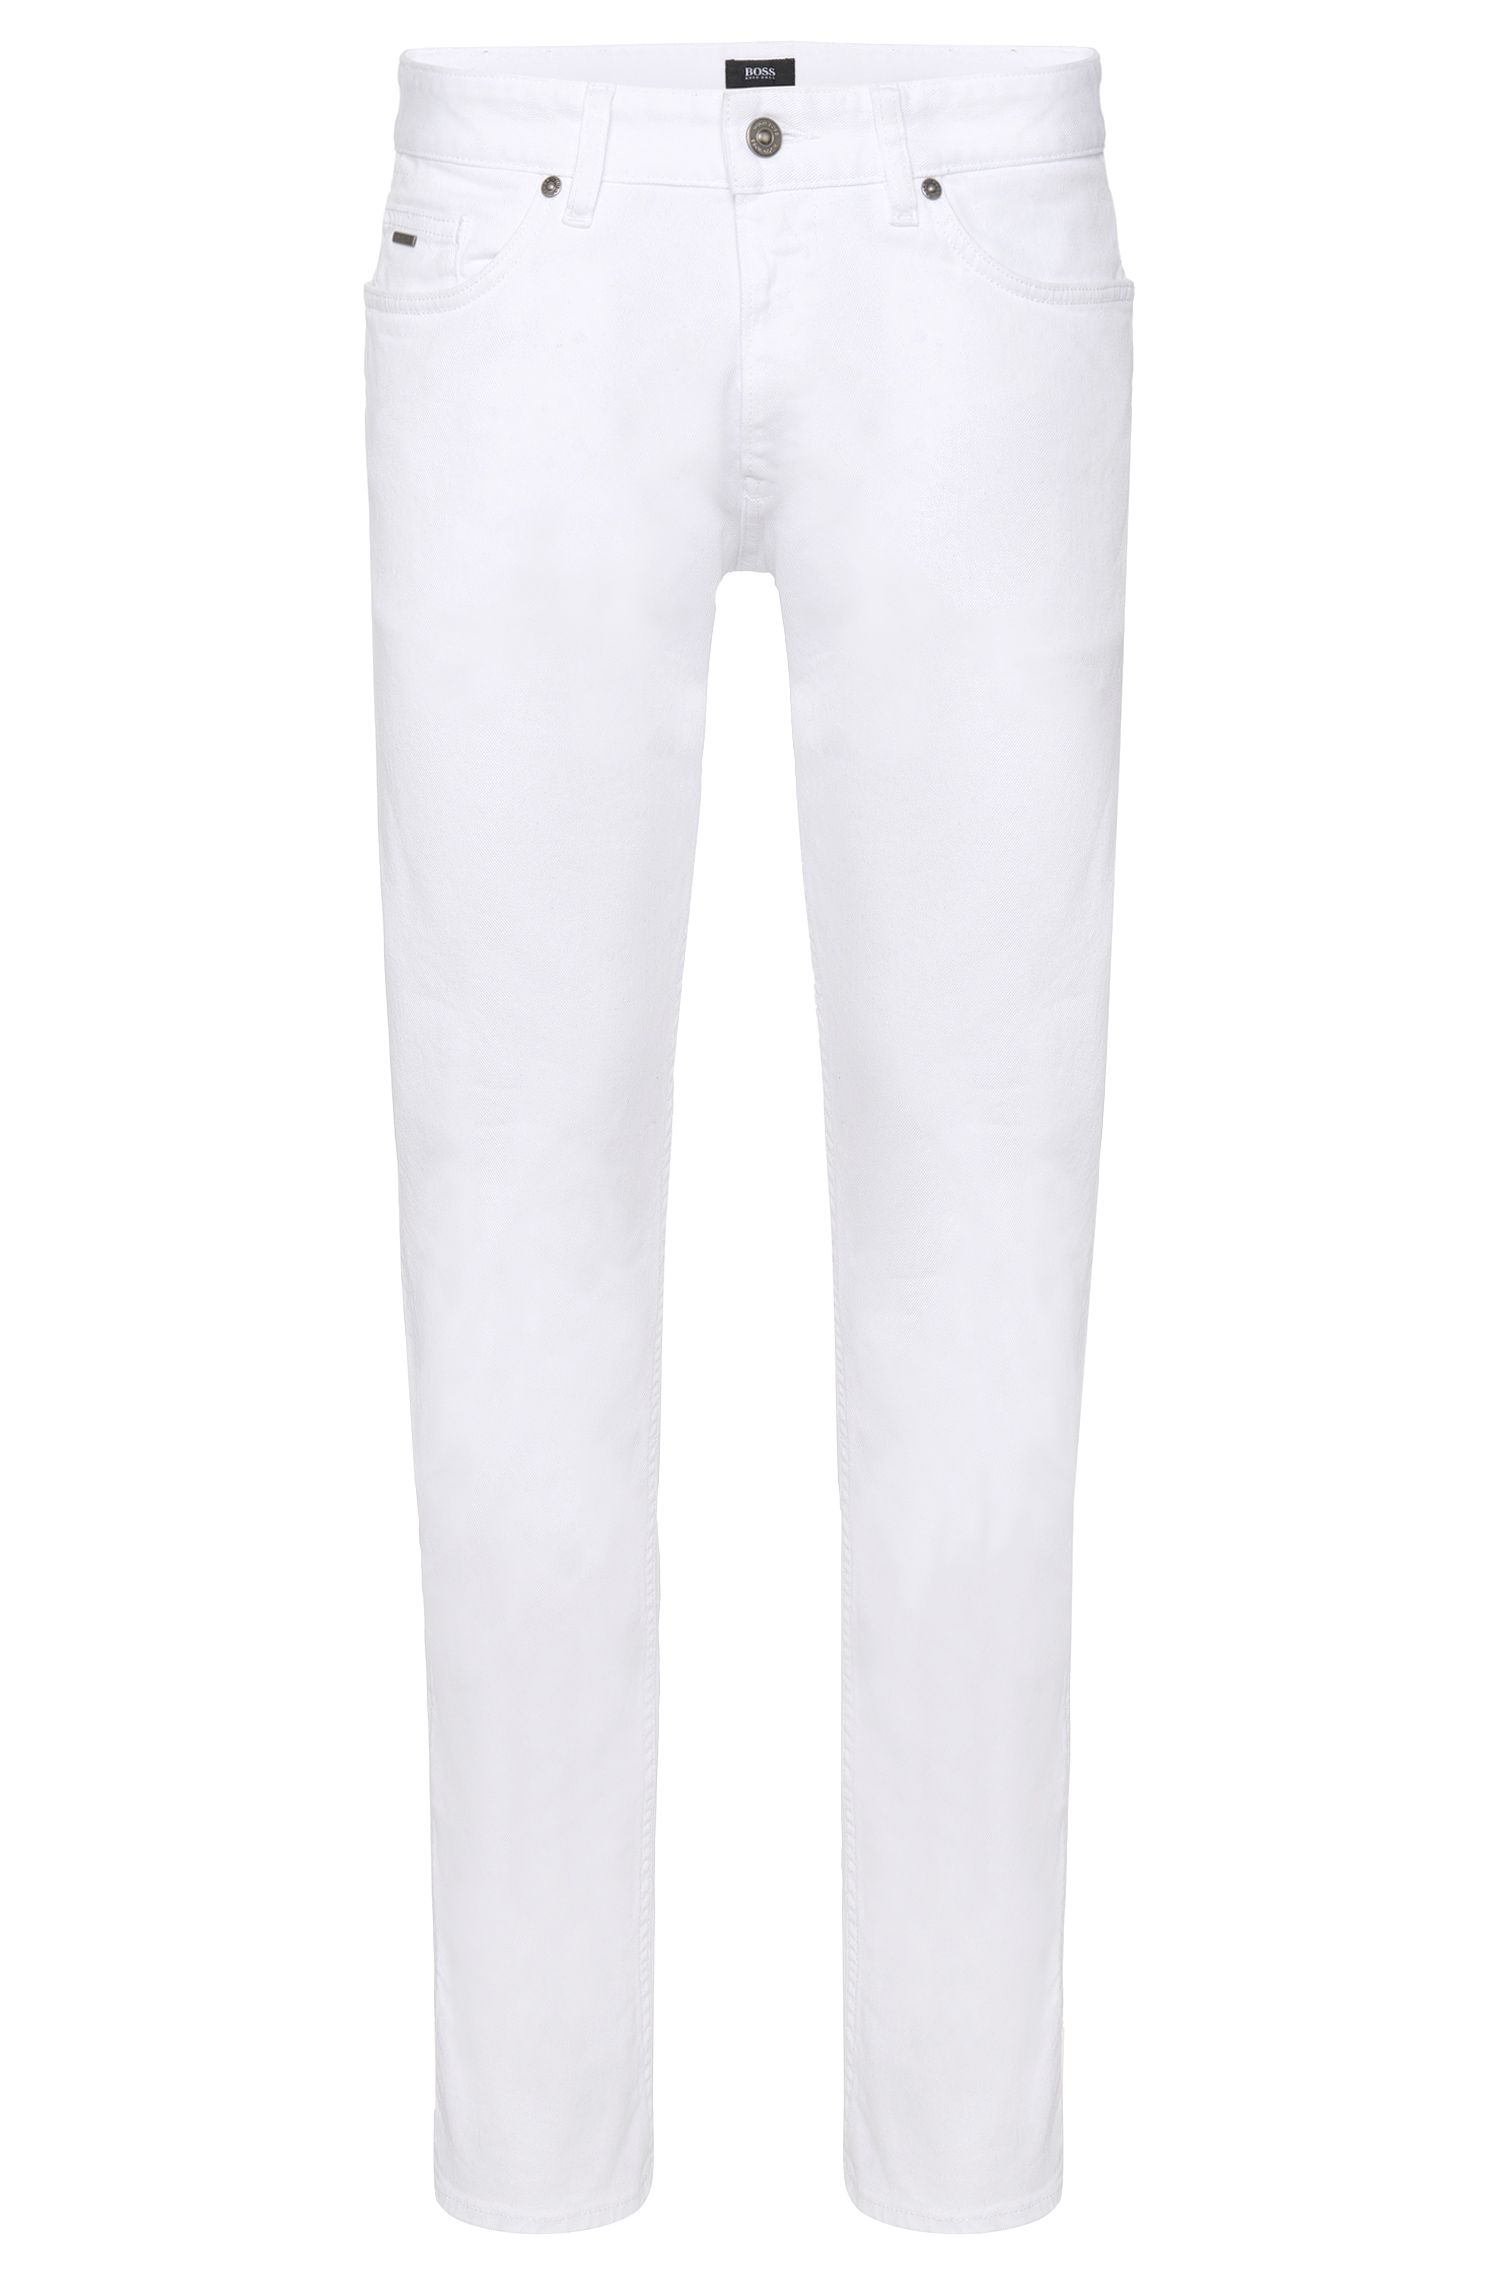 'Delaware' | Slim Fit, 10 oz Stretch Cotton Jeans